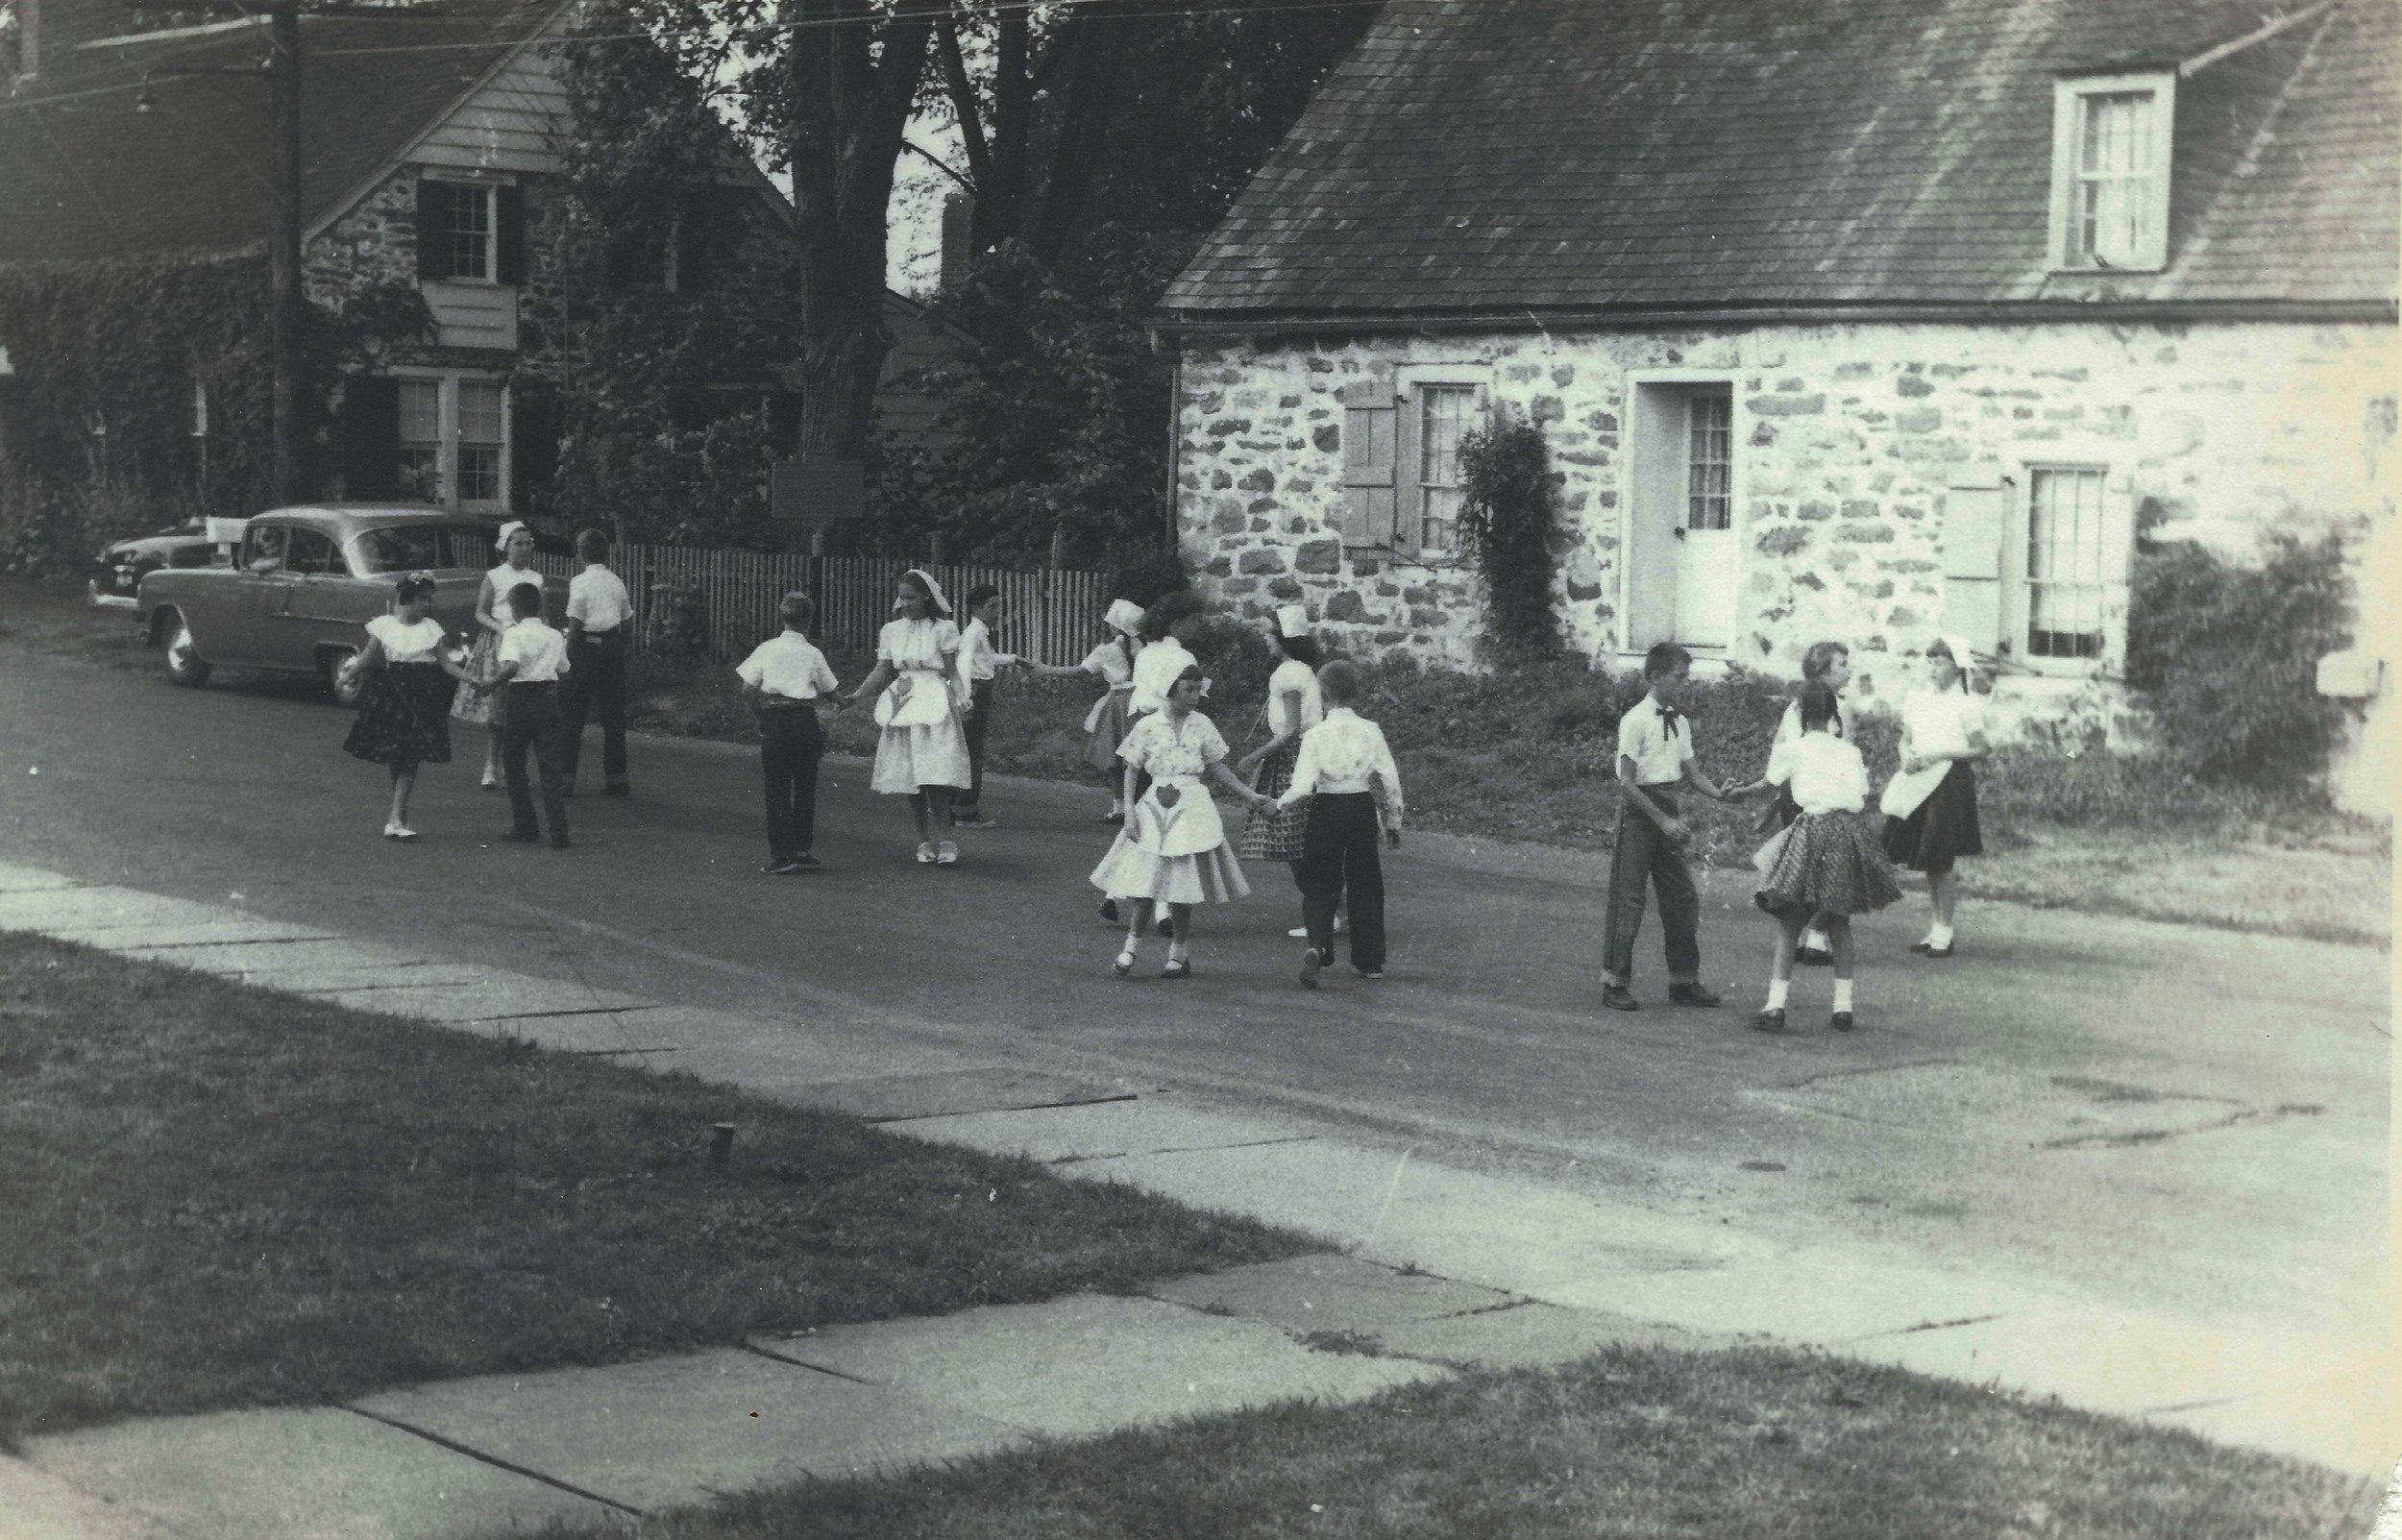 Old New Paltz Stone House Day, 1956. From the Historic Huguenot Street Archives.